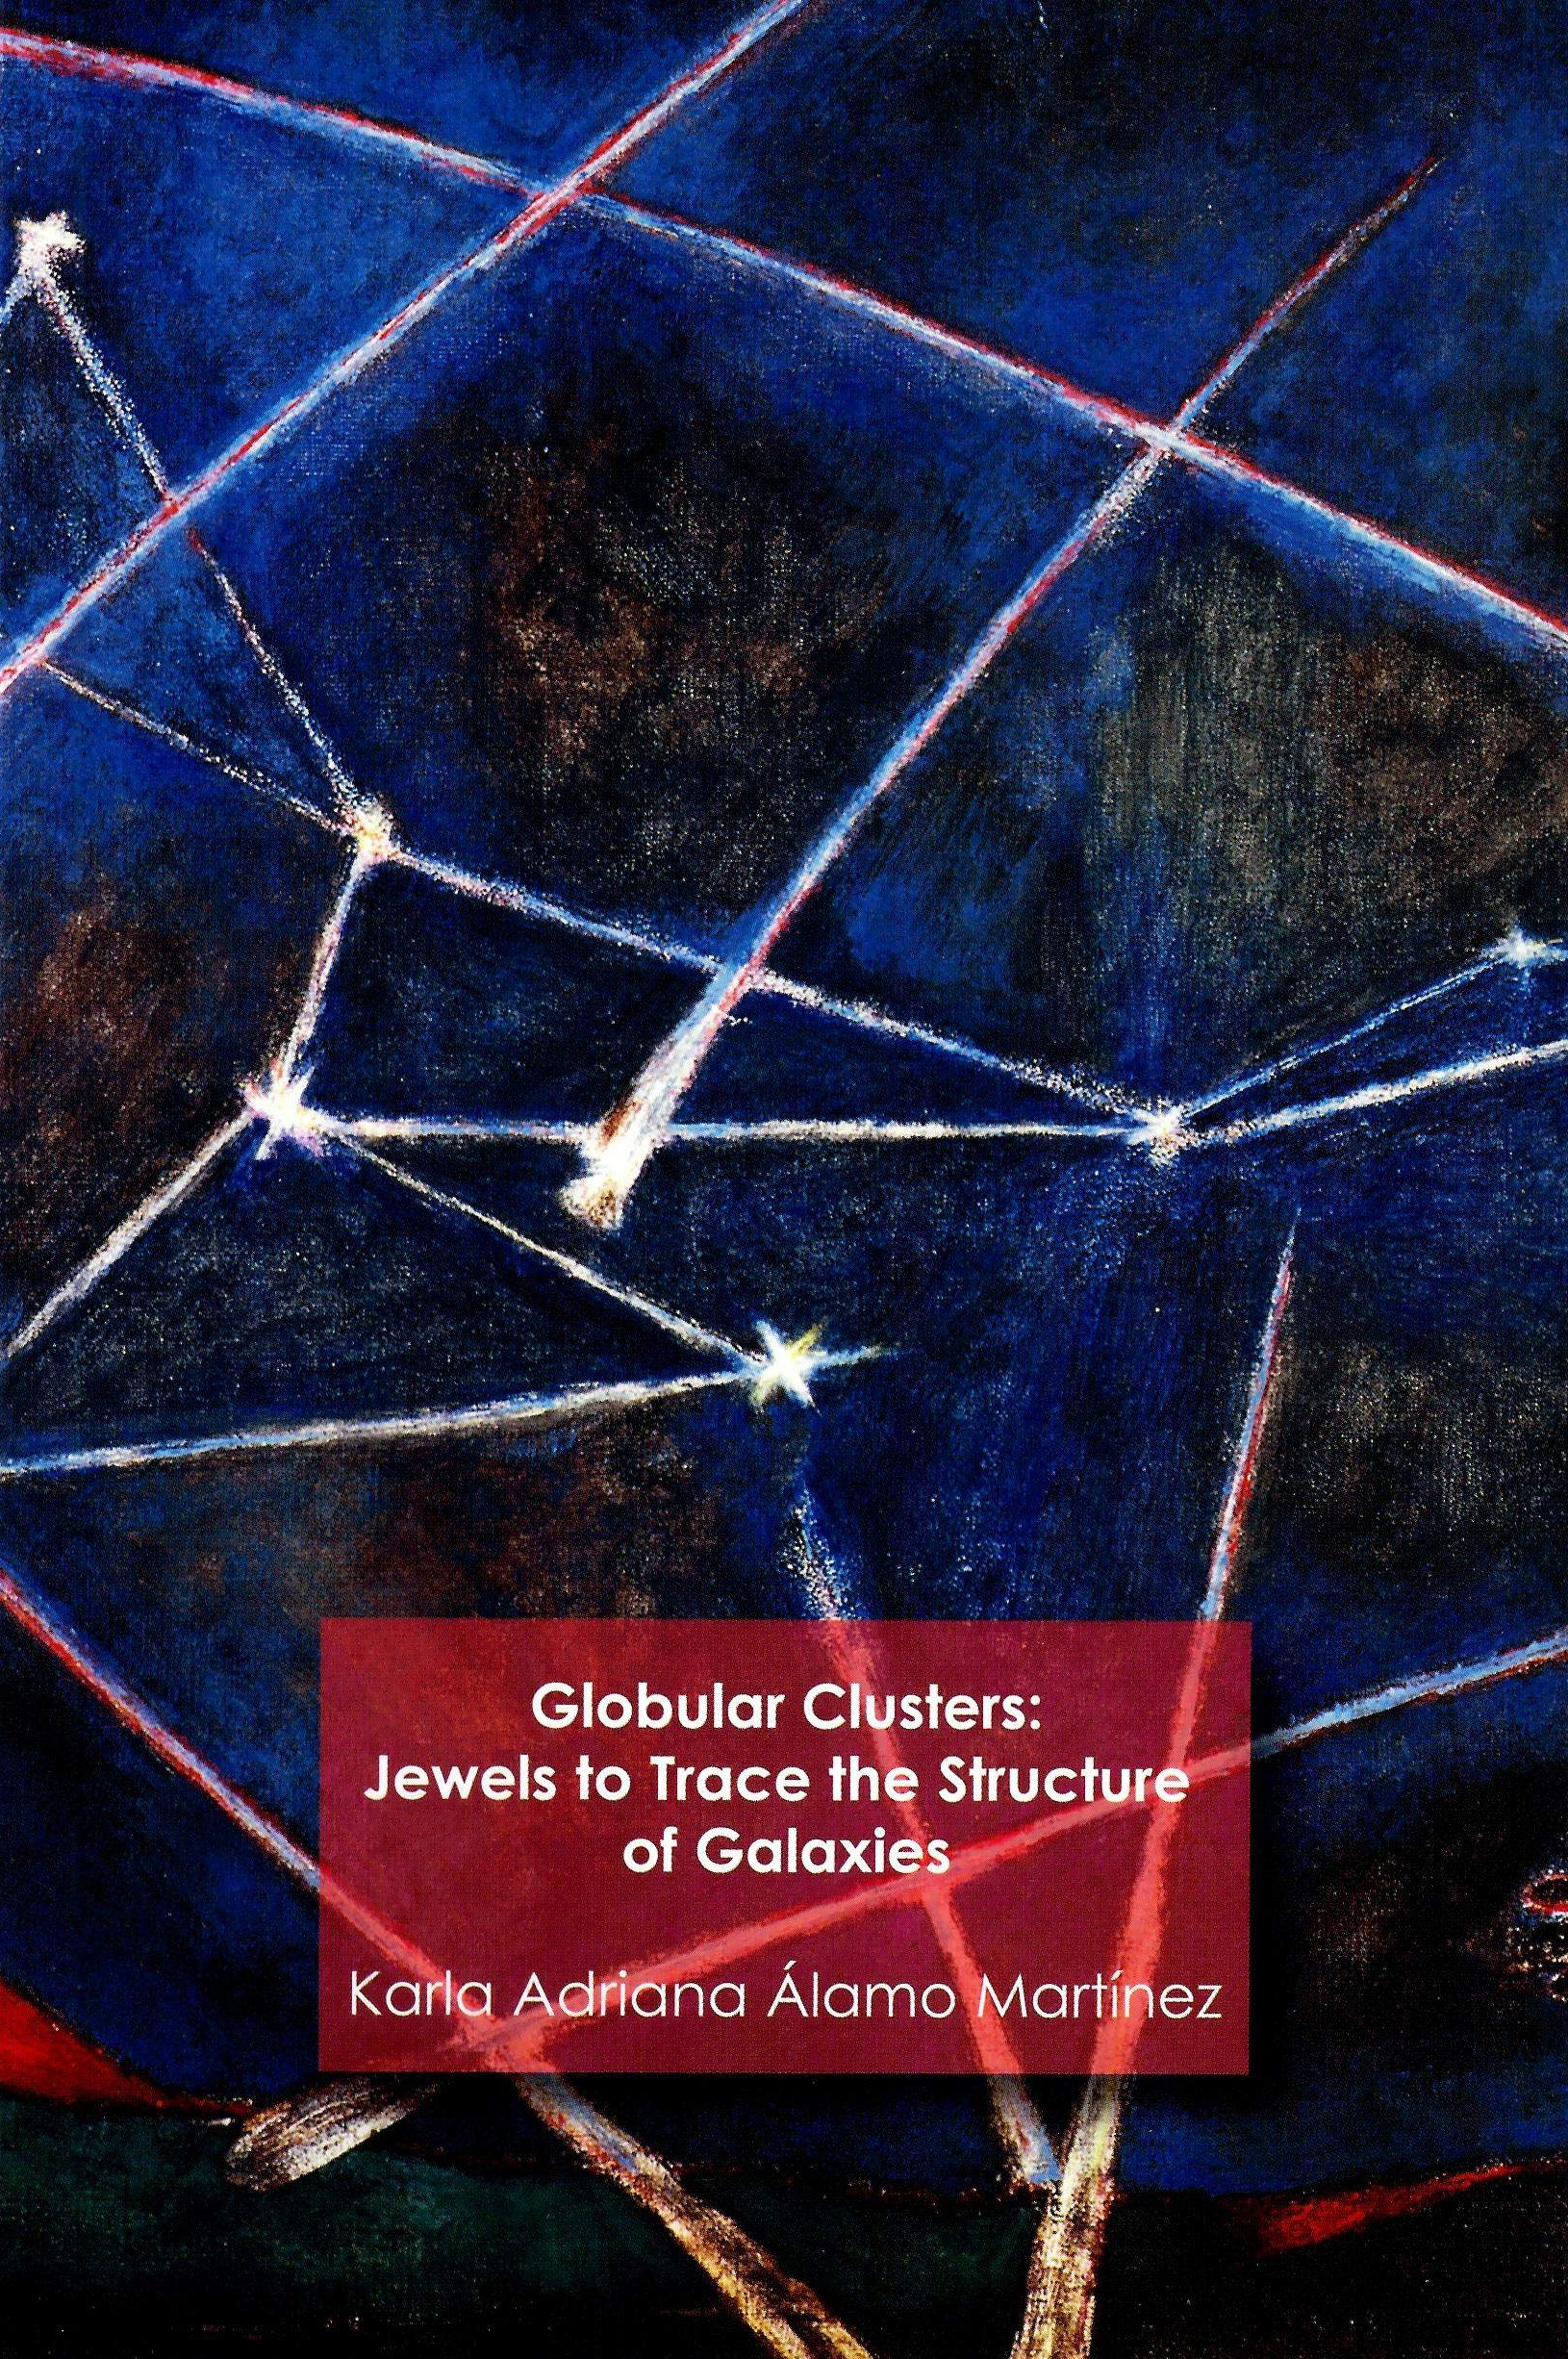 Globular Clusters: Jewels to Trace the Structure of Galaxies